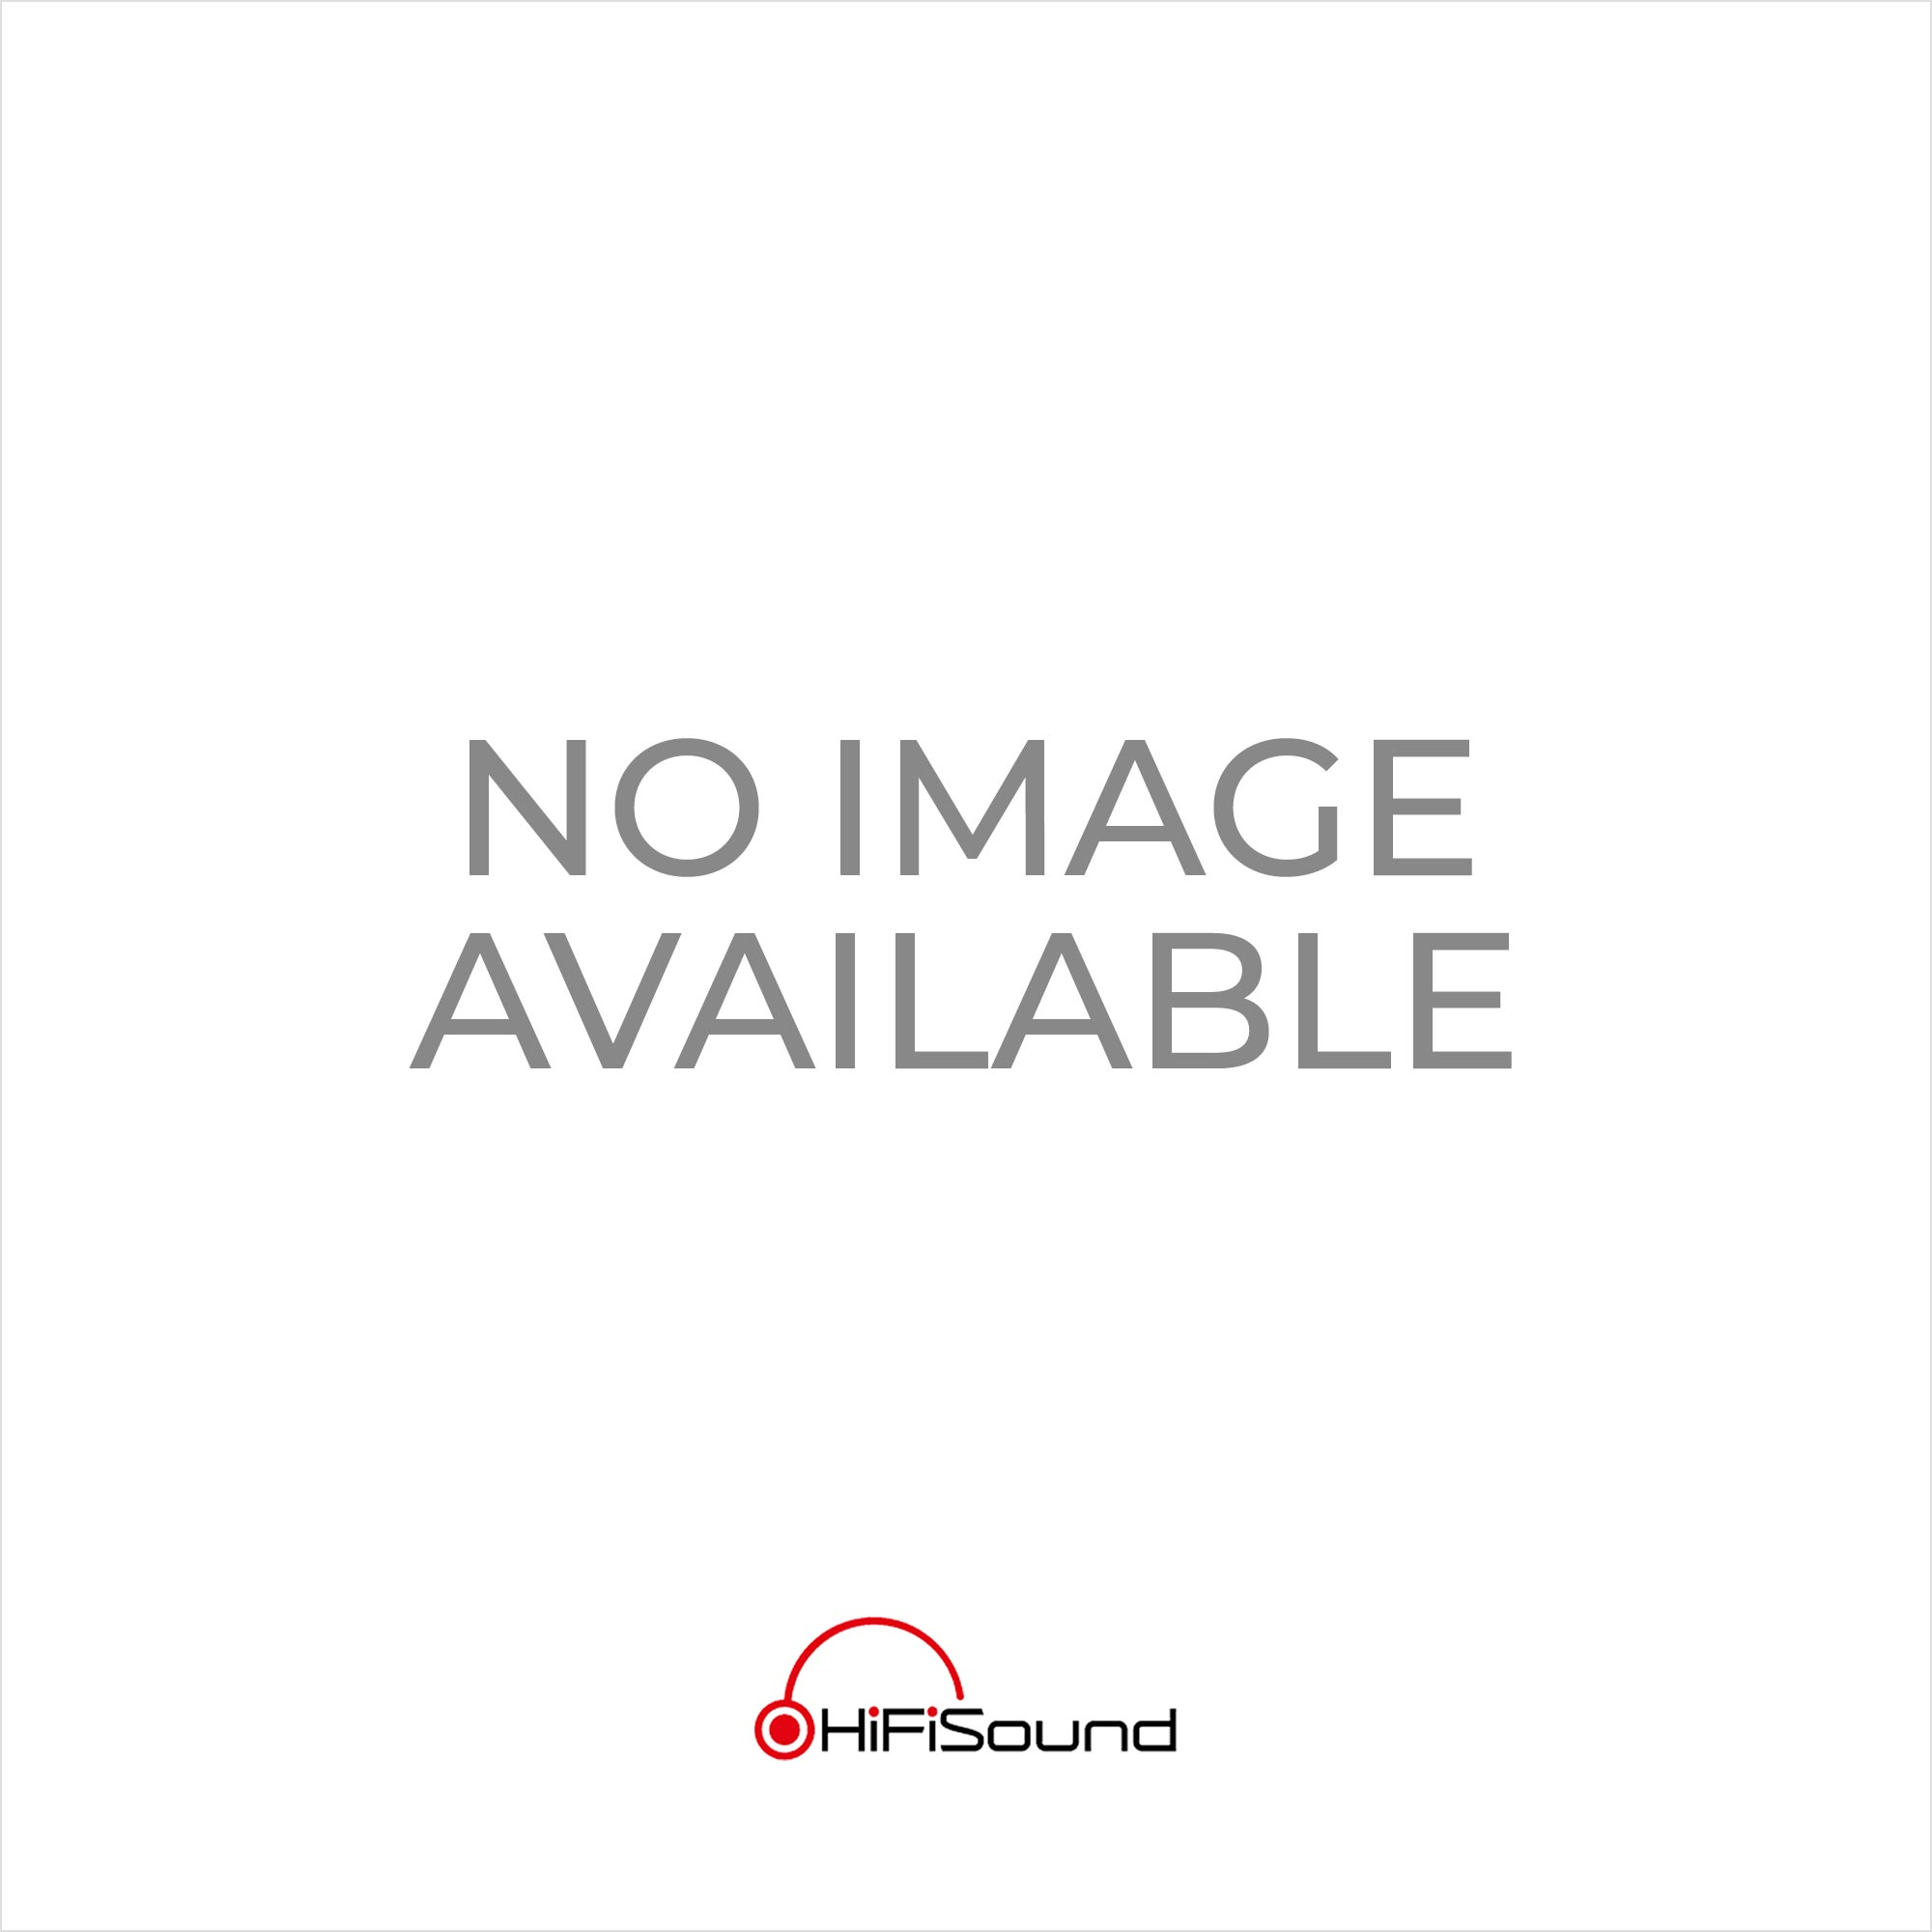 Pathos Acoustics InPolEar Headphone Amplifier